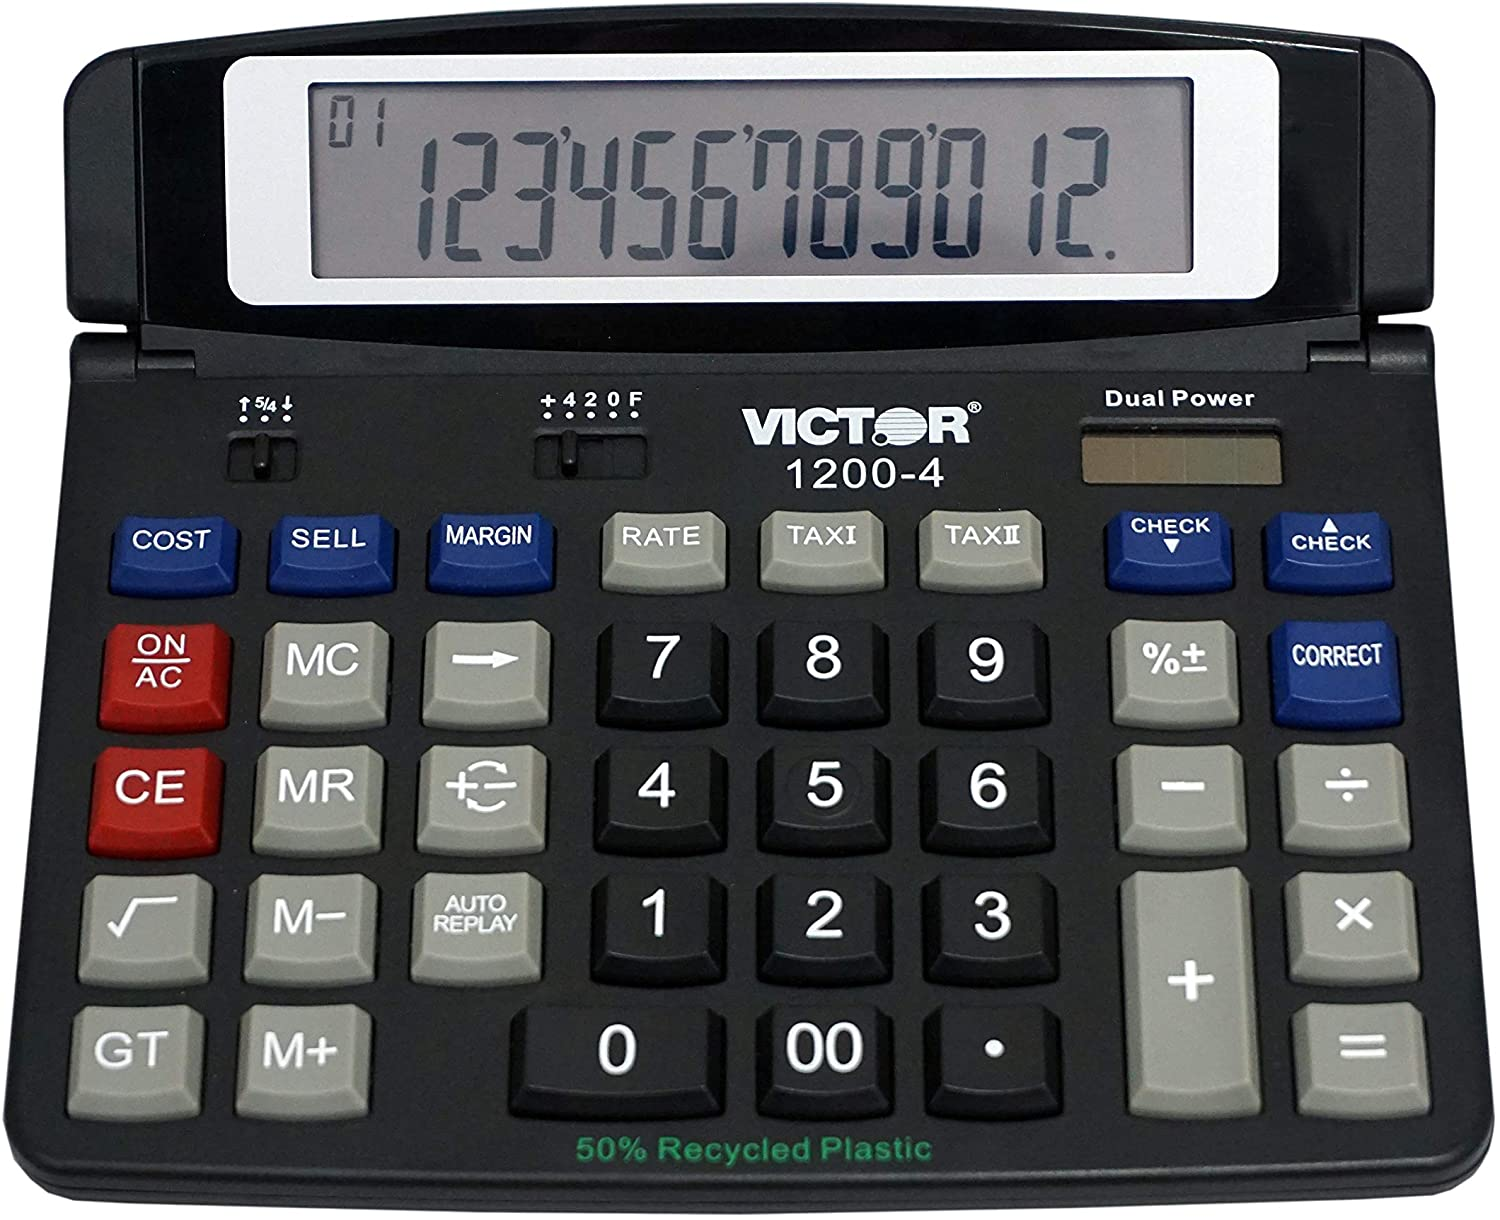 Victor 1200-4 12-Digit Large Professional Desktop Calculator, Battery and Solar Hybrid Powered Tilt LCD Display, Great for Home and Office Use, Black